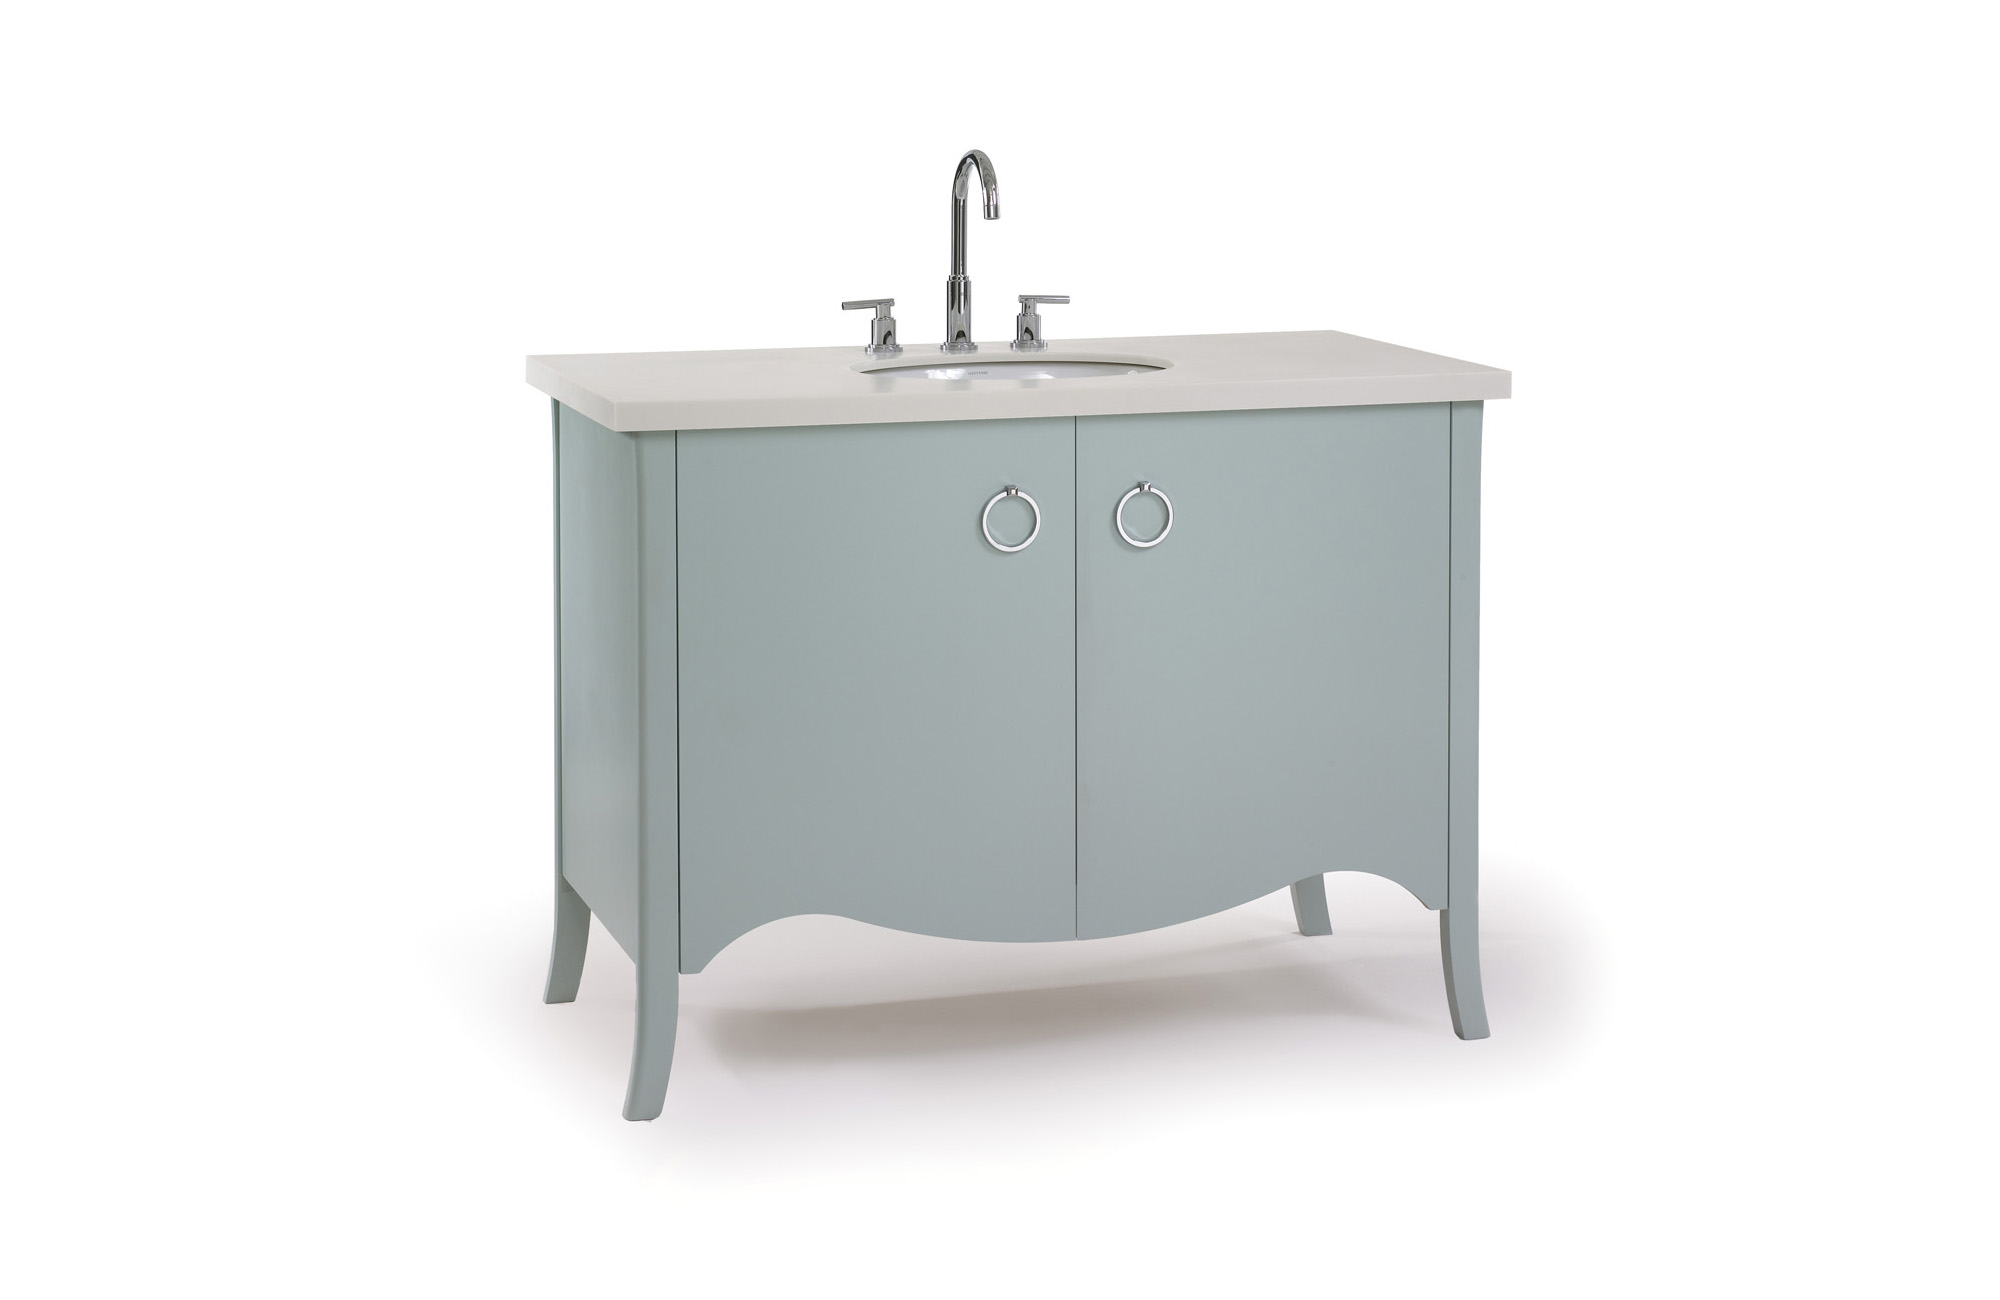 Bathroom Redo – My Picks for Top Bathroom Vanities